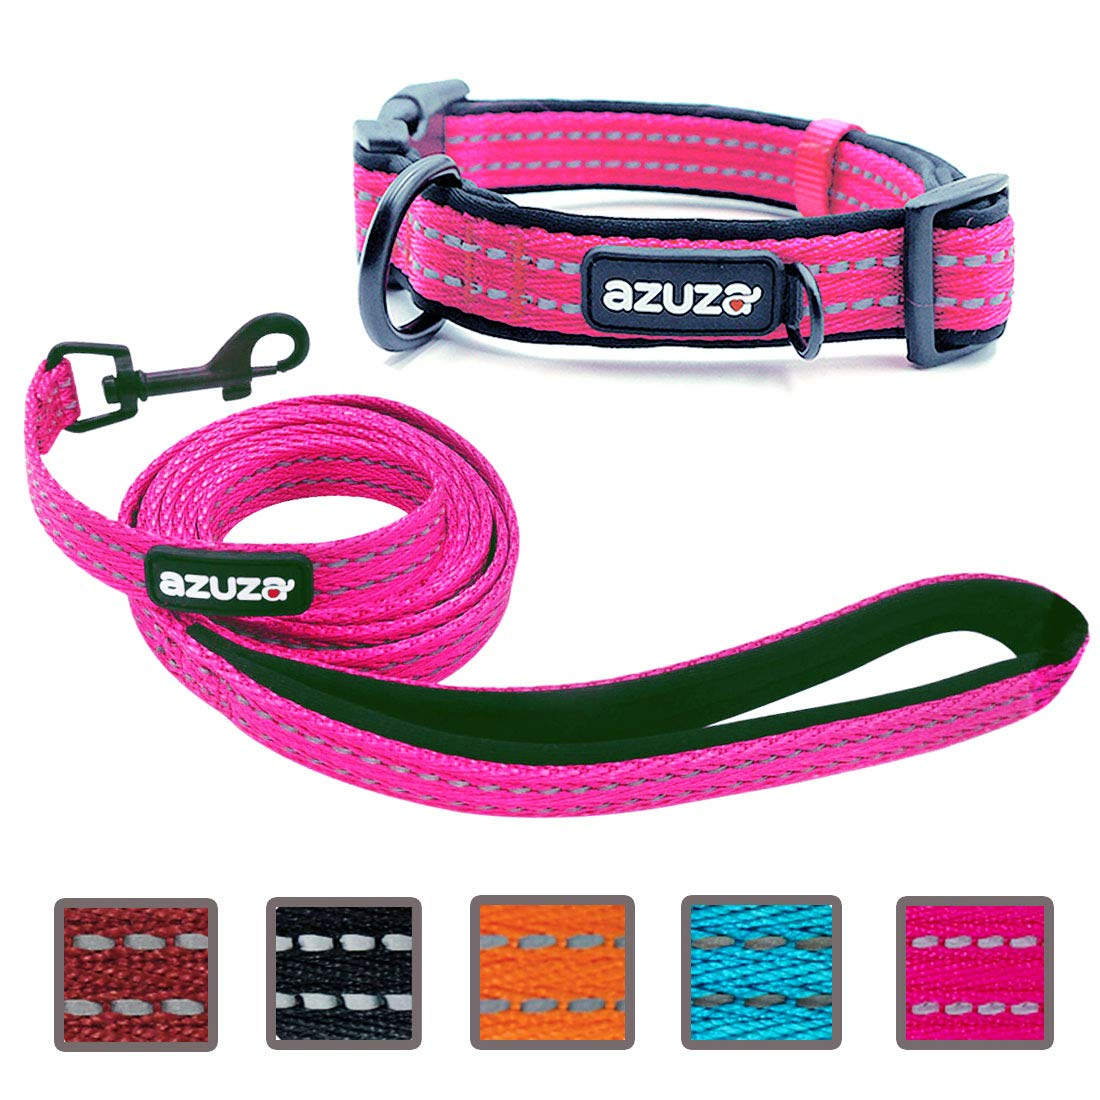 Hot Pink Medium Hot Pink Medium azuza Durable Padded Dog Leash and Collar Set, Reflective Strip Extra Safe and Comfy for Medium Dogs, Hot Pink